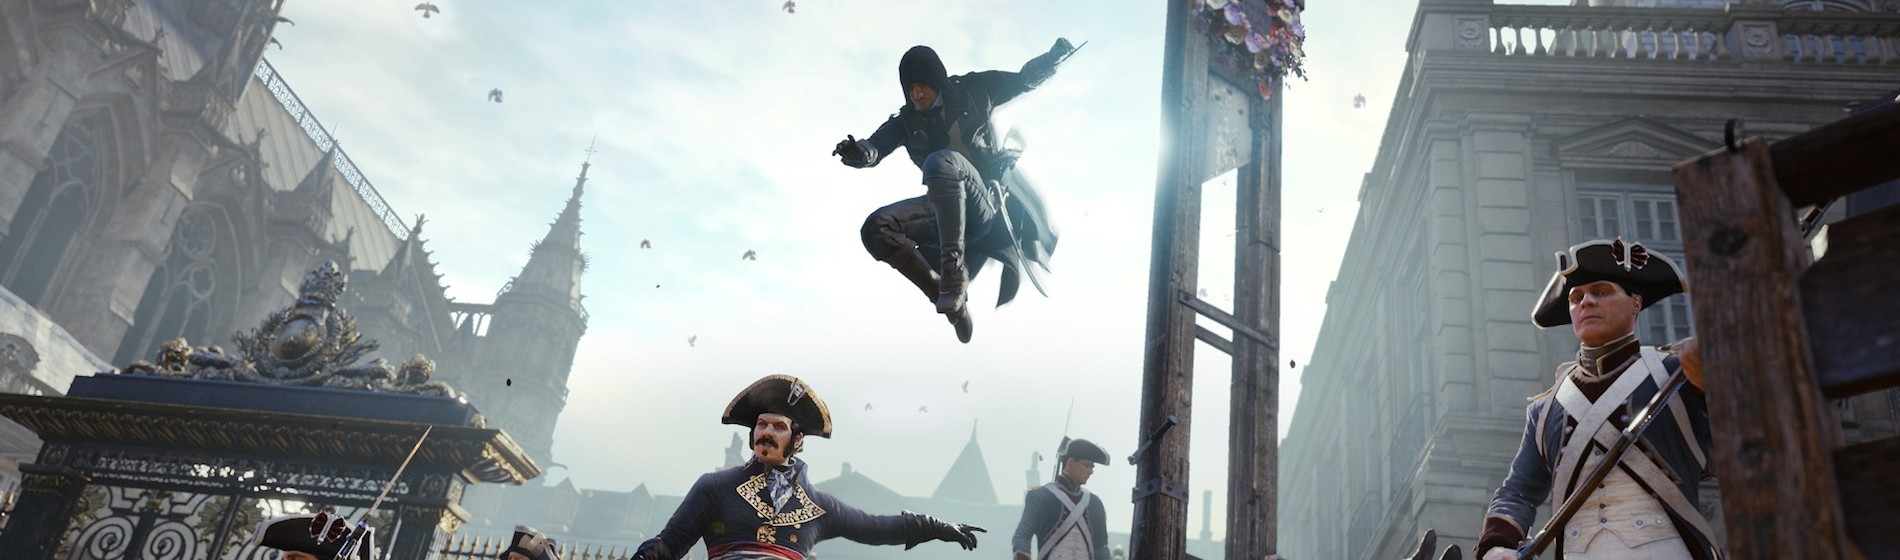 ACUnity-guillotine-drop